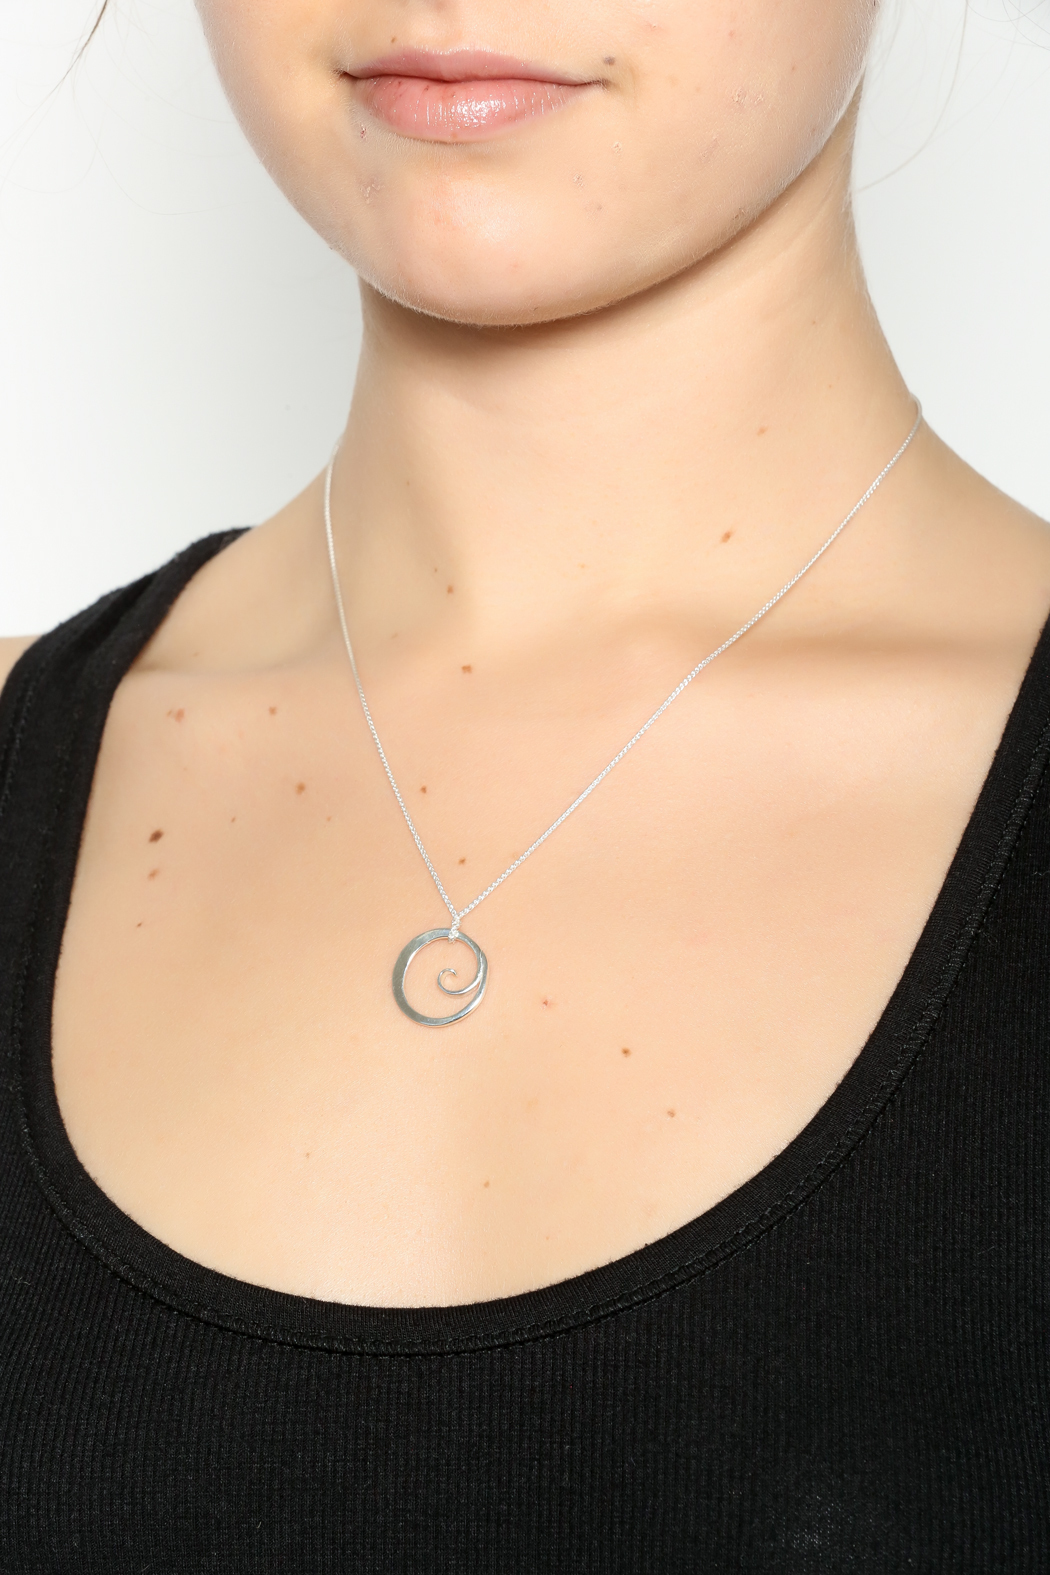 Jewelry studio of wellfleet floating wave necklace from for Just my style personalized jewelry studio